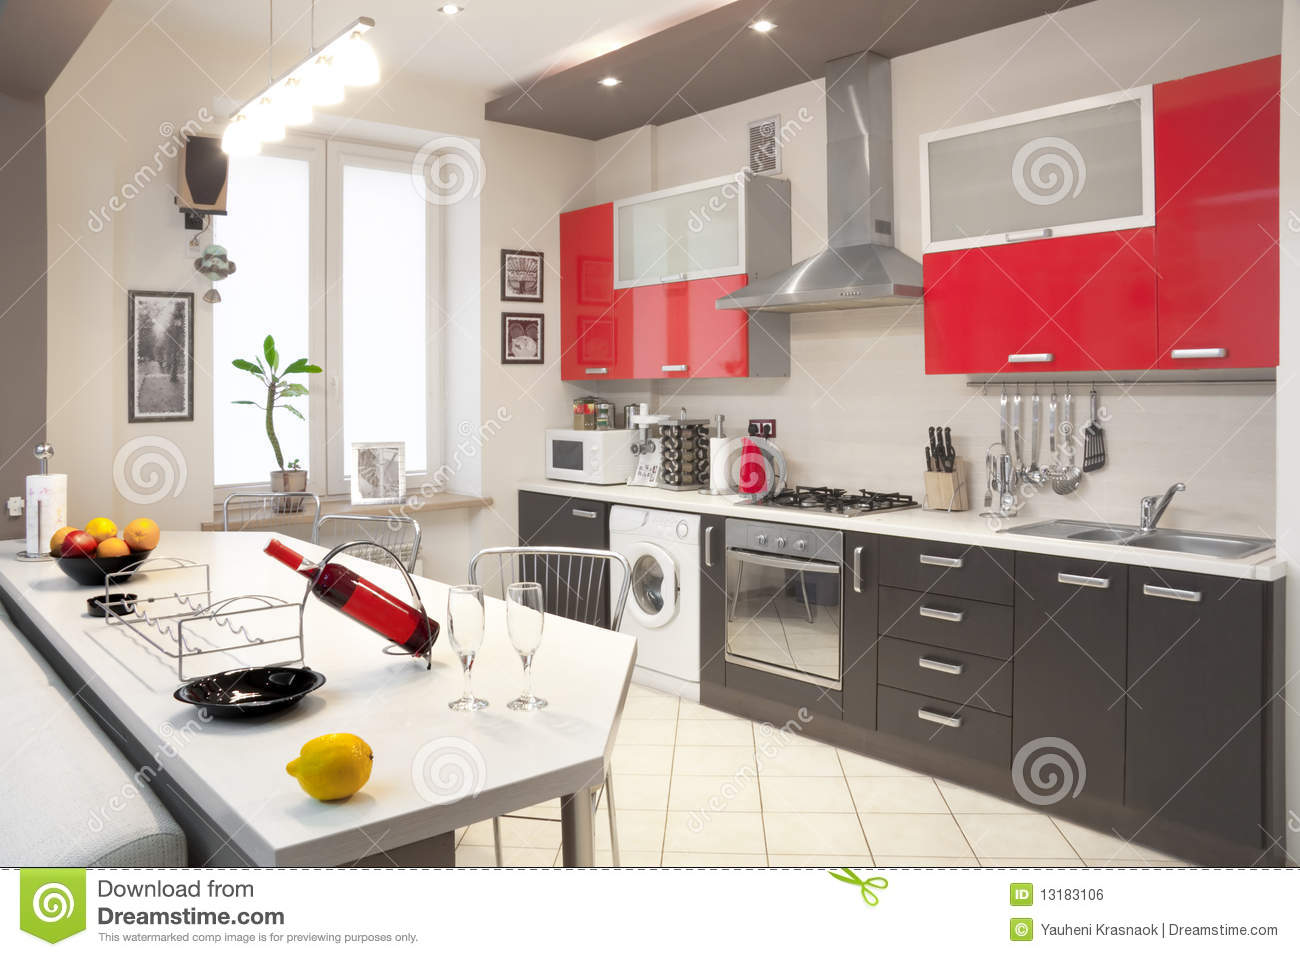 Modern kitchen interior royalty free stock image image for Modern kitchen interior